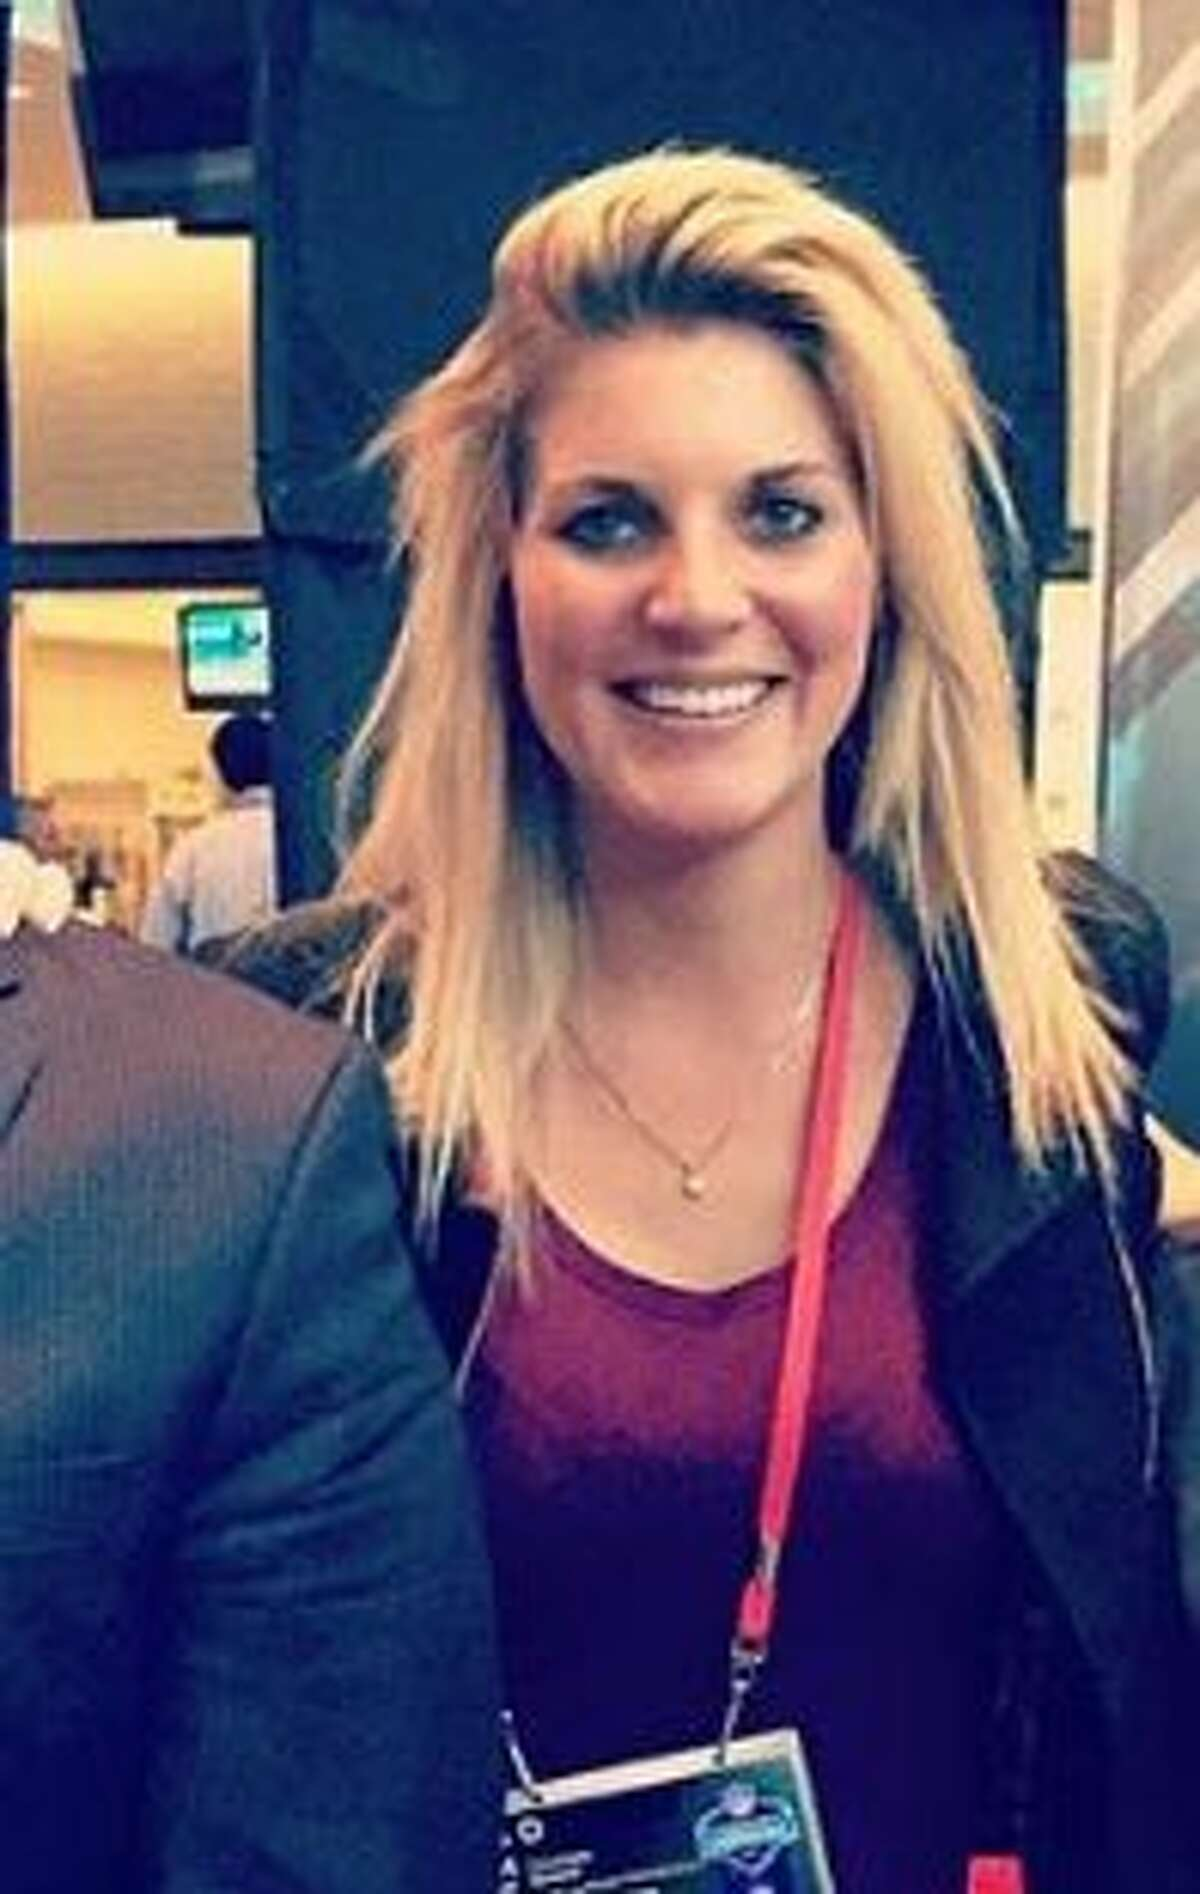 Things to know about Courtney Roland, the sports journalist who went missing the first weekend of 2018.